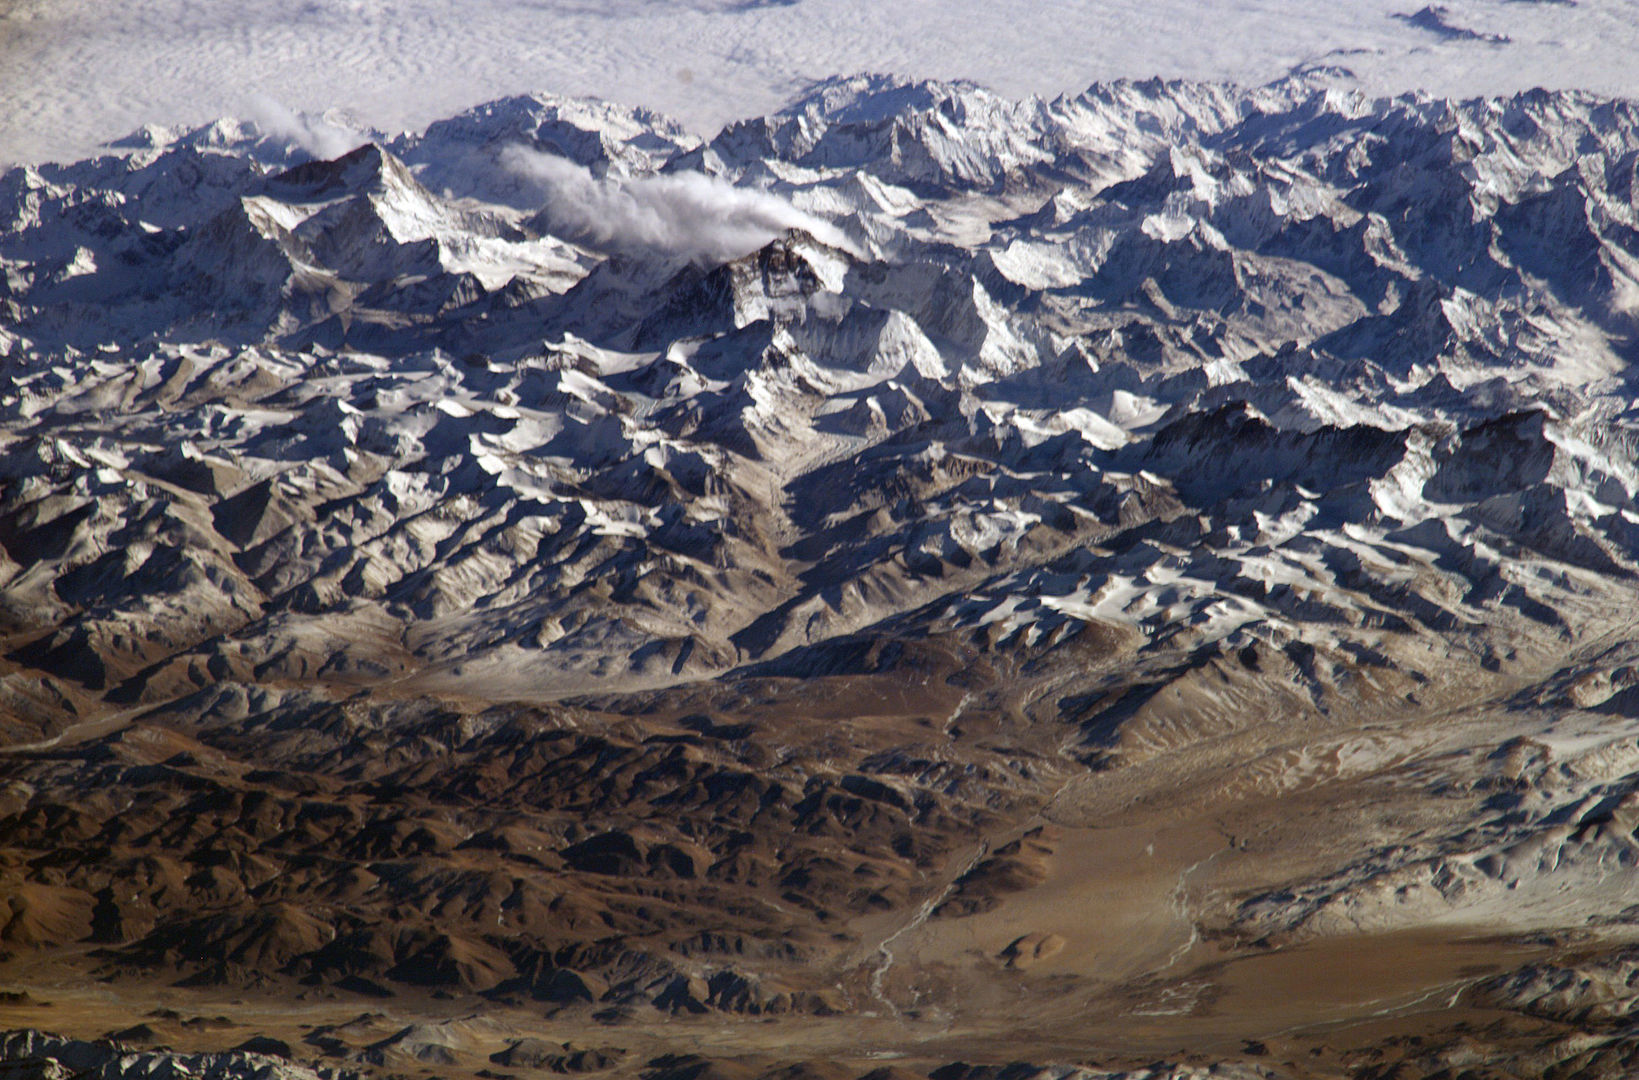 This photograph of the Himalaya was taken from the International Space Station in 2004. Visible from left to right are: Makalu, Chomolungma (Everest), Lhotse and Cho Oyu. [Photo] Courtesy of NASA, Wikimedia